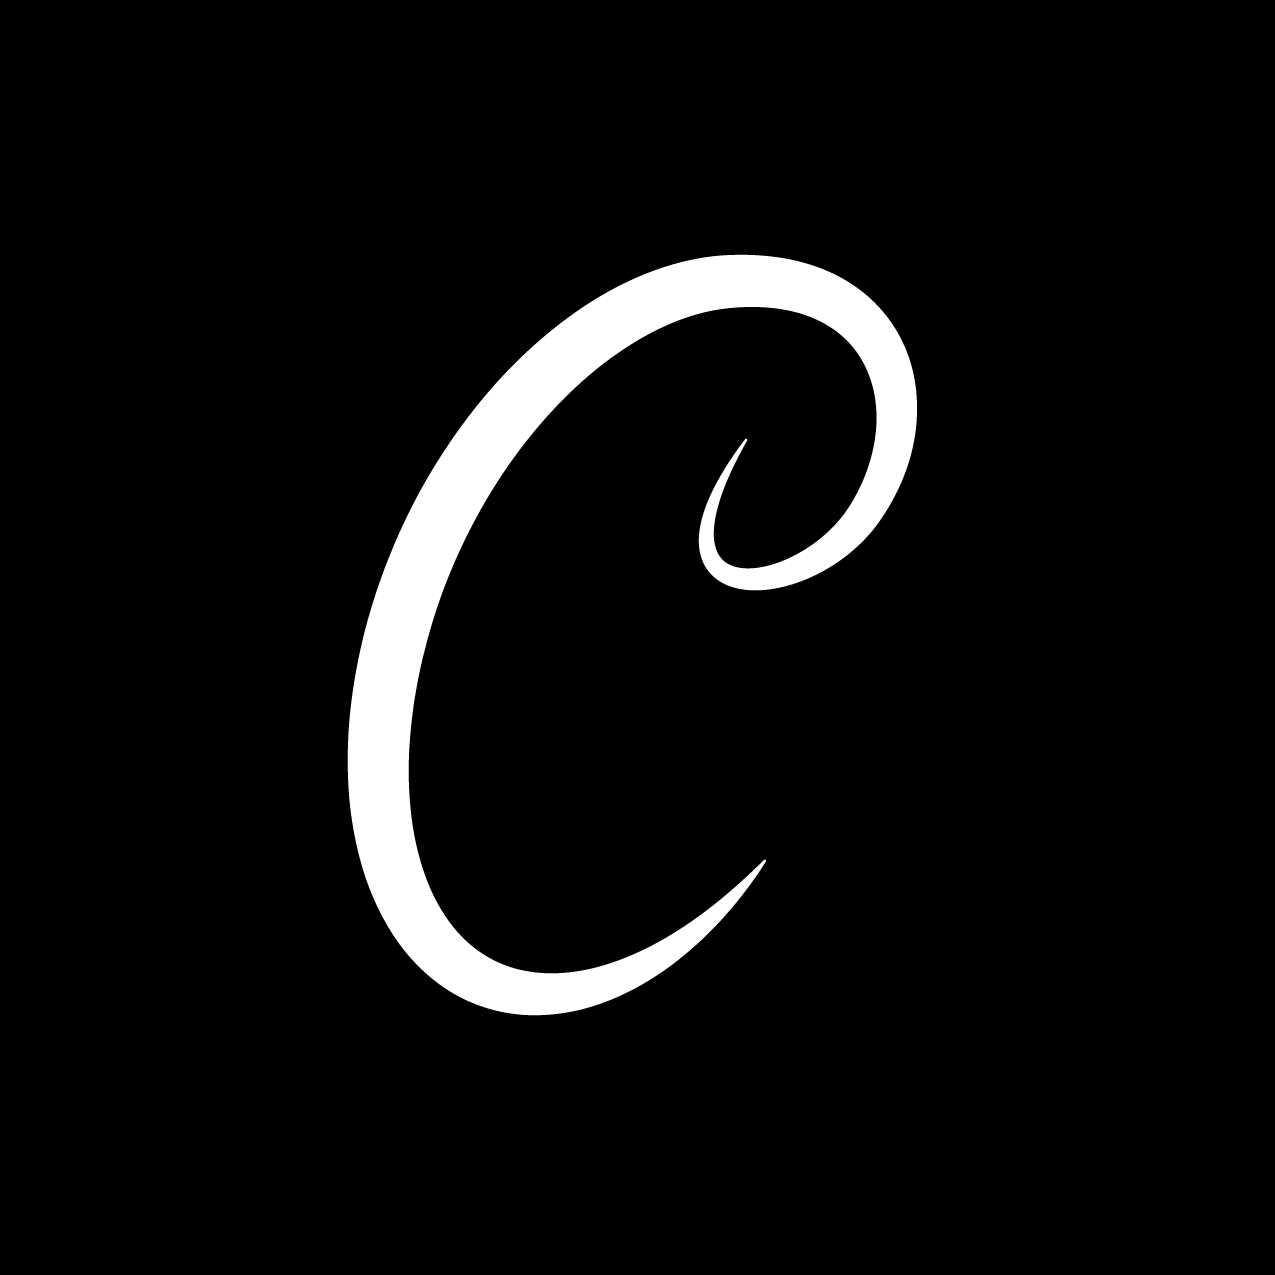 Letter C10 design by Furia